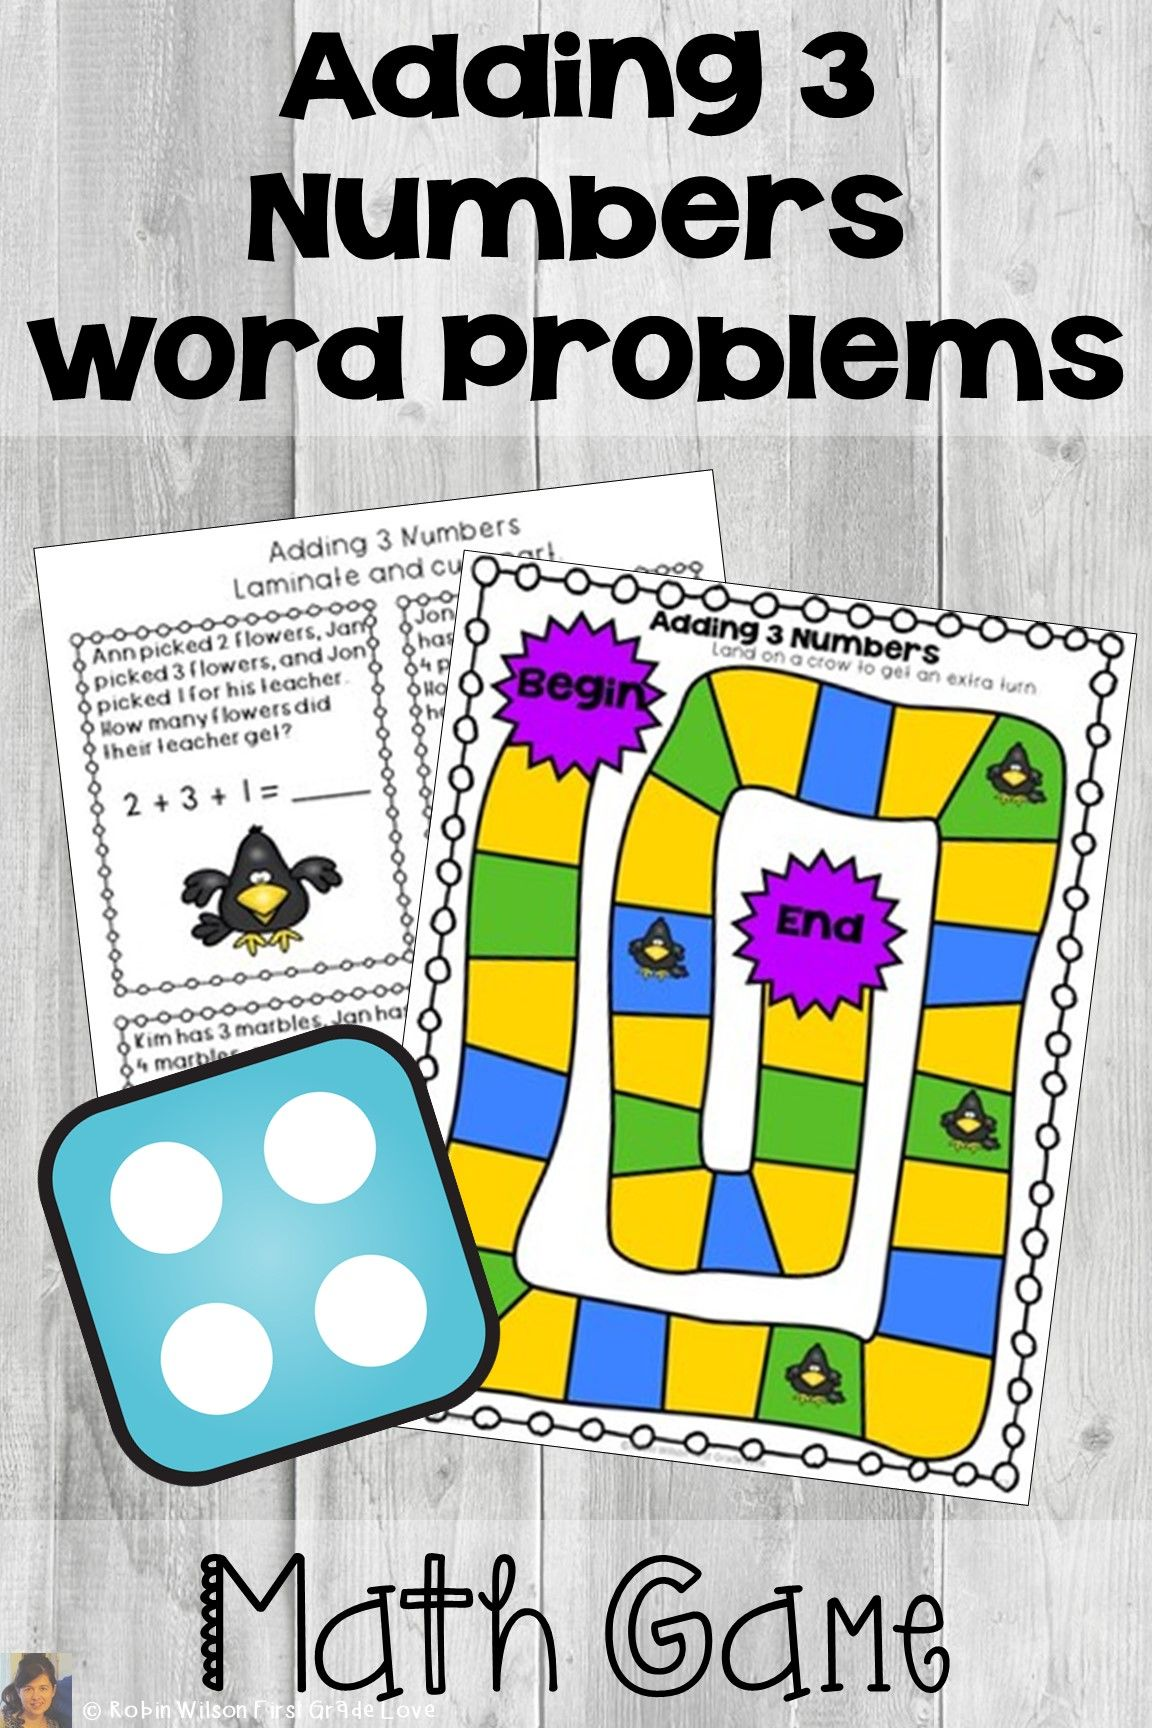 Adding 3 Numbers First Grade Word Problem Games And